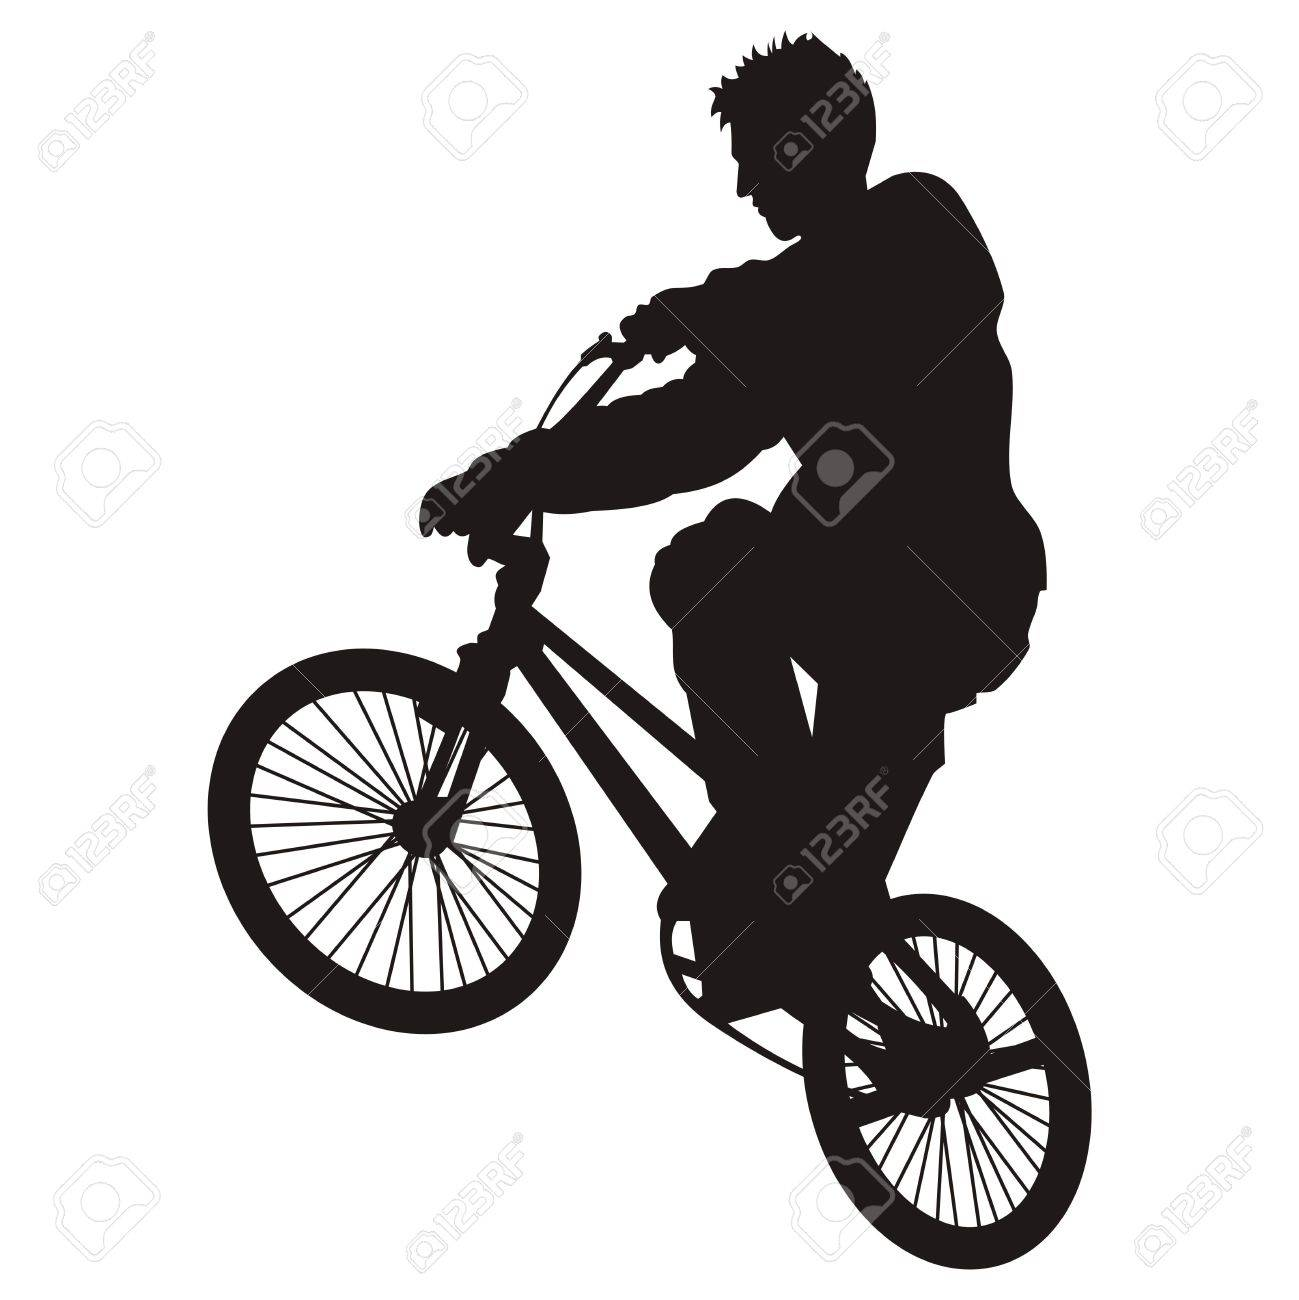 Bicycle rider silhouette isolated on white - 2705538